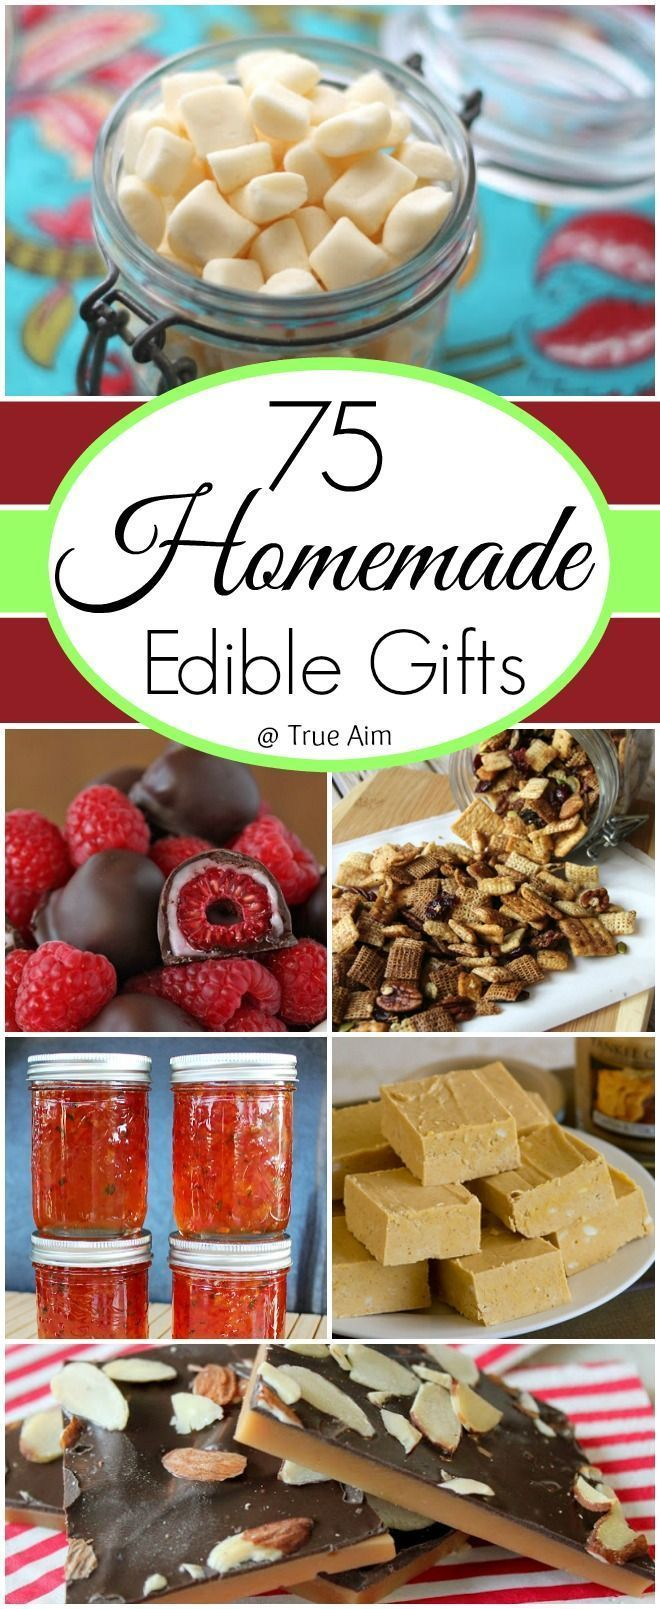 75 homemade edible gift ideas homemade truffles bark recipe and 75 homemade edible gift ideas true aim forumfinder